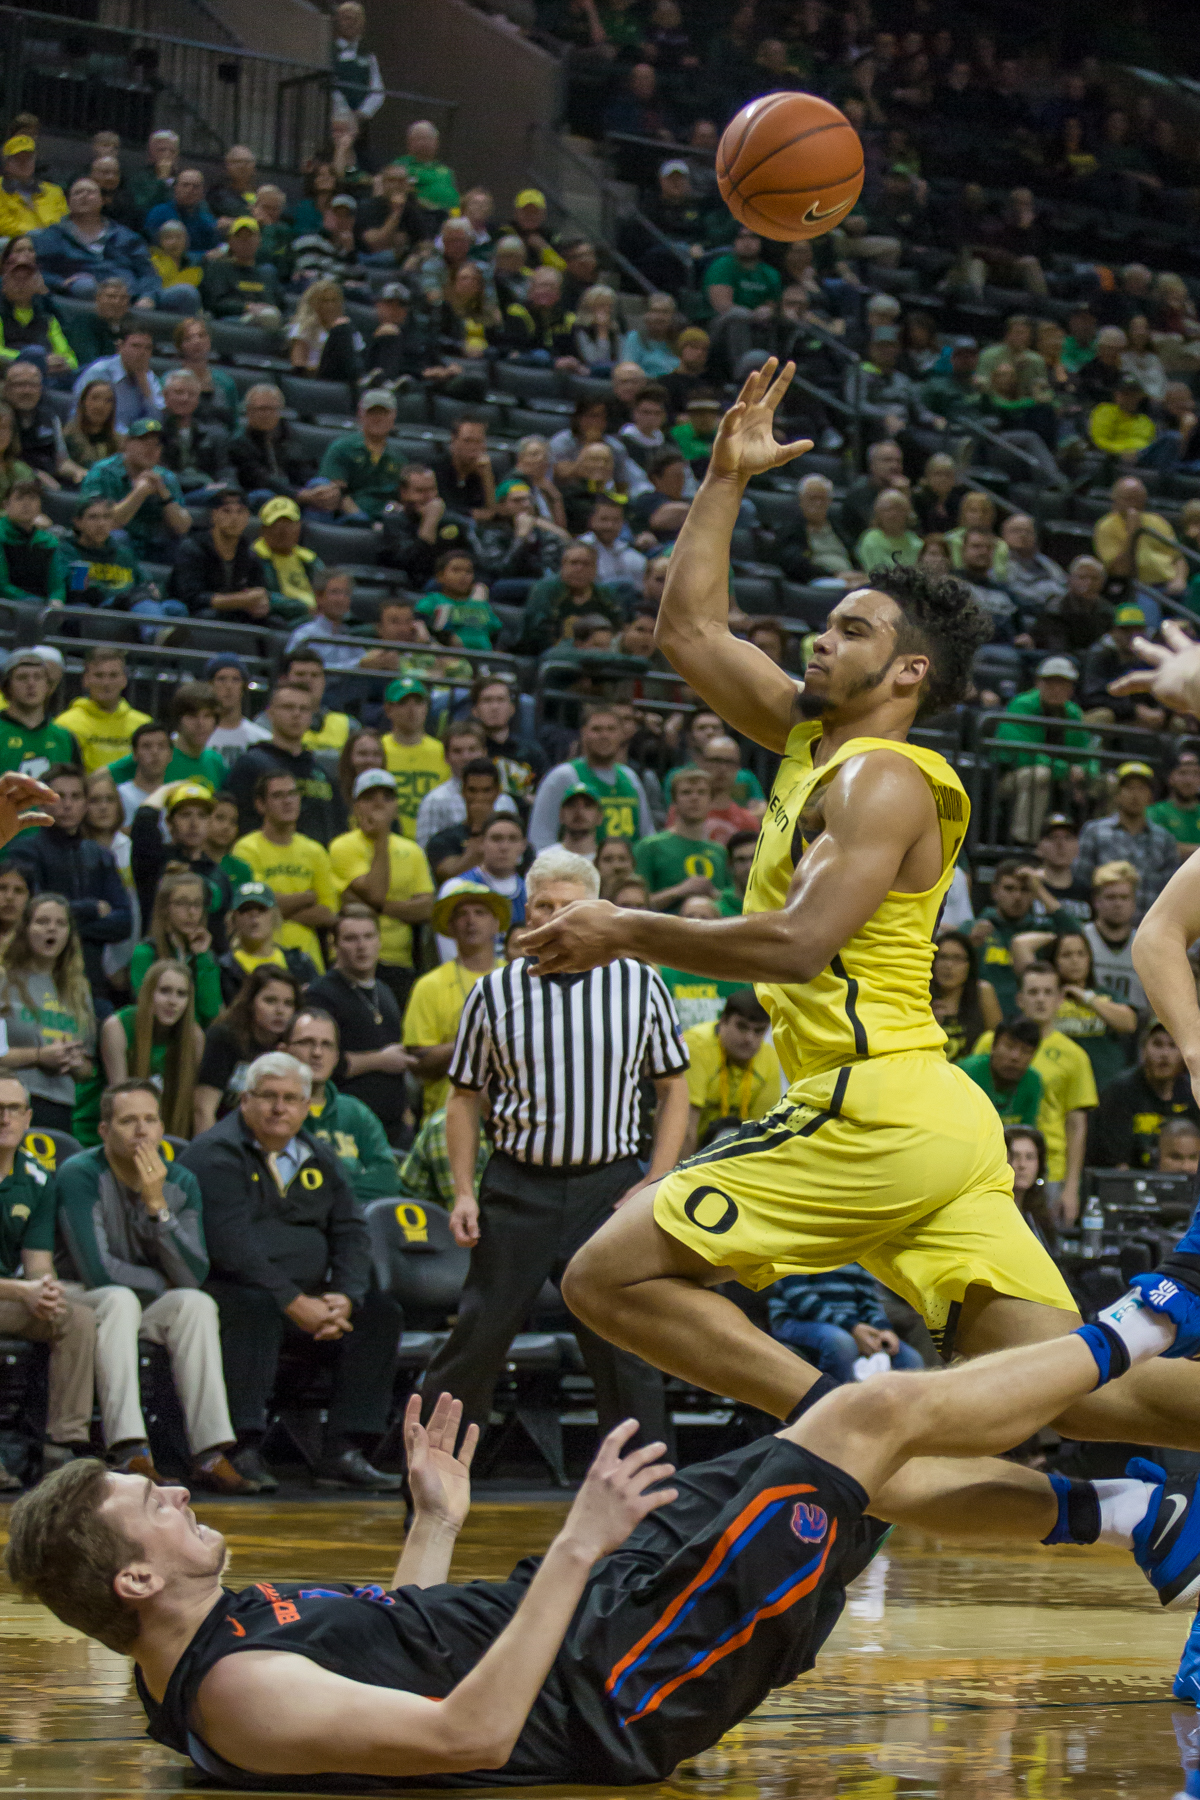 Oregon forward Dillon Brooks (#24) tosses the ball up after knocking over a Boise State defender. After trailing for most of the game, the Oregon Ducks defeated the Boise State Broncos 68-63. Photo by Dillon Vibes